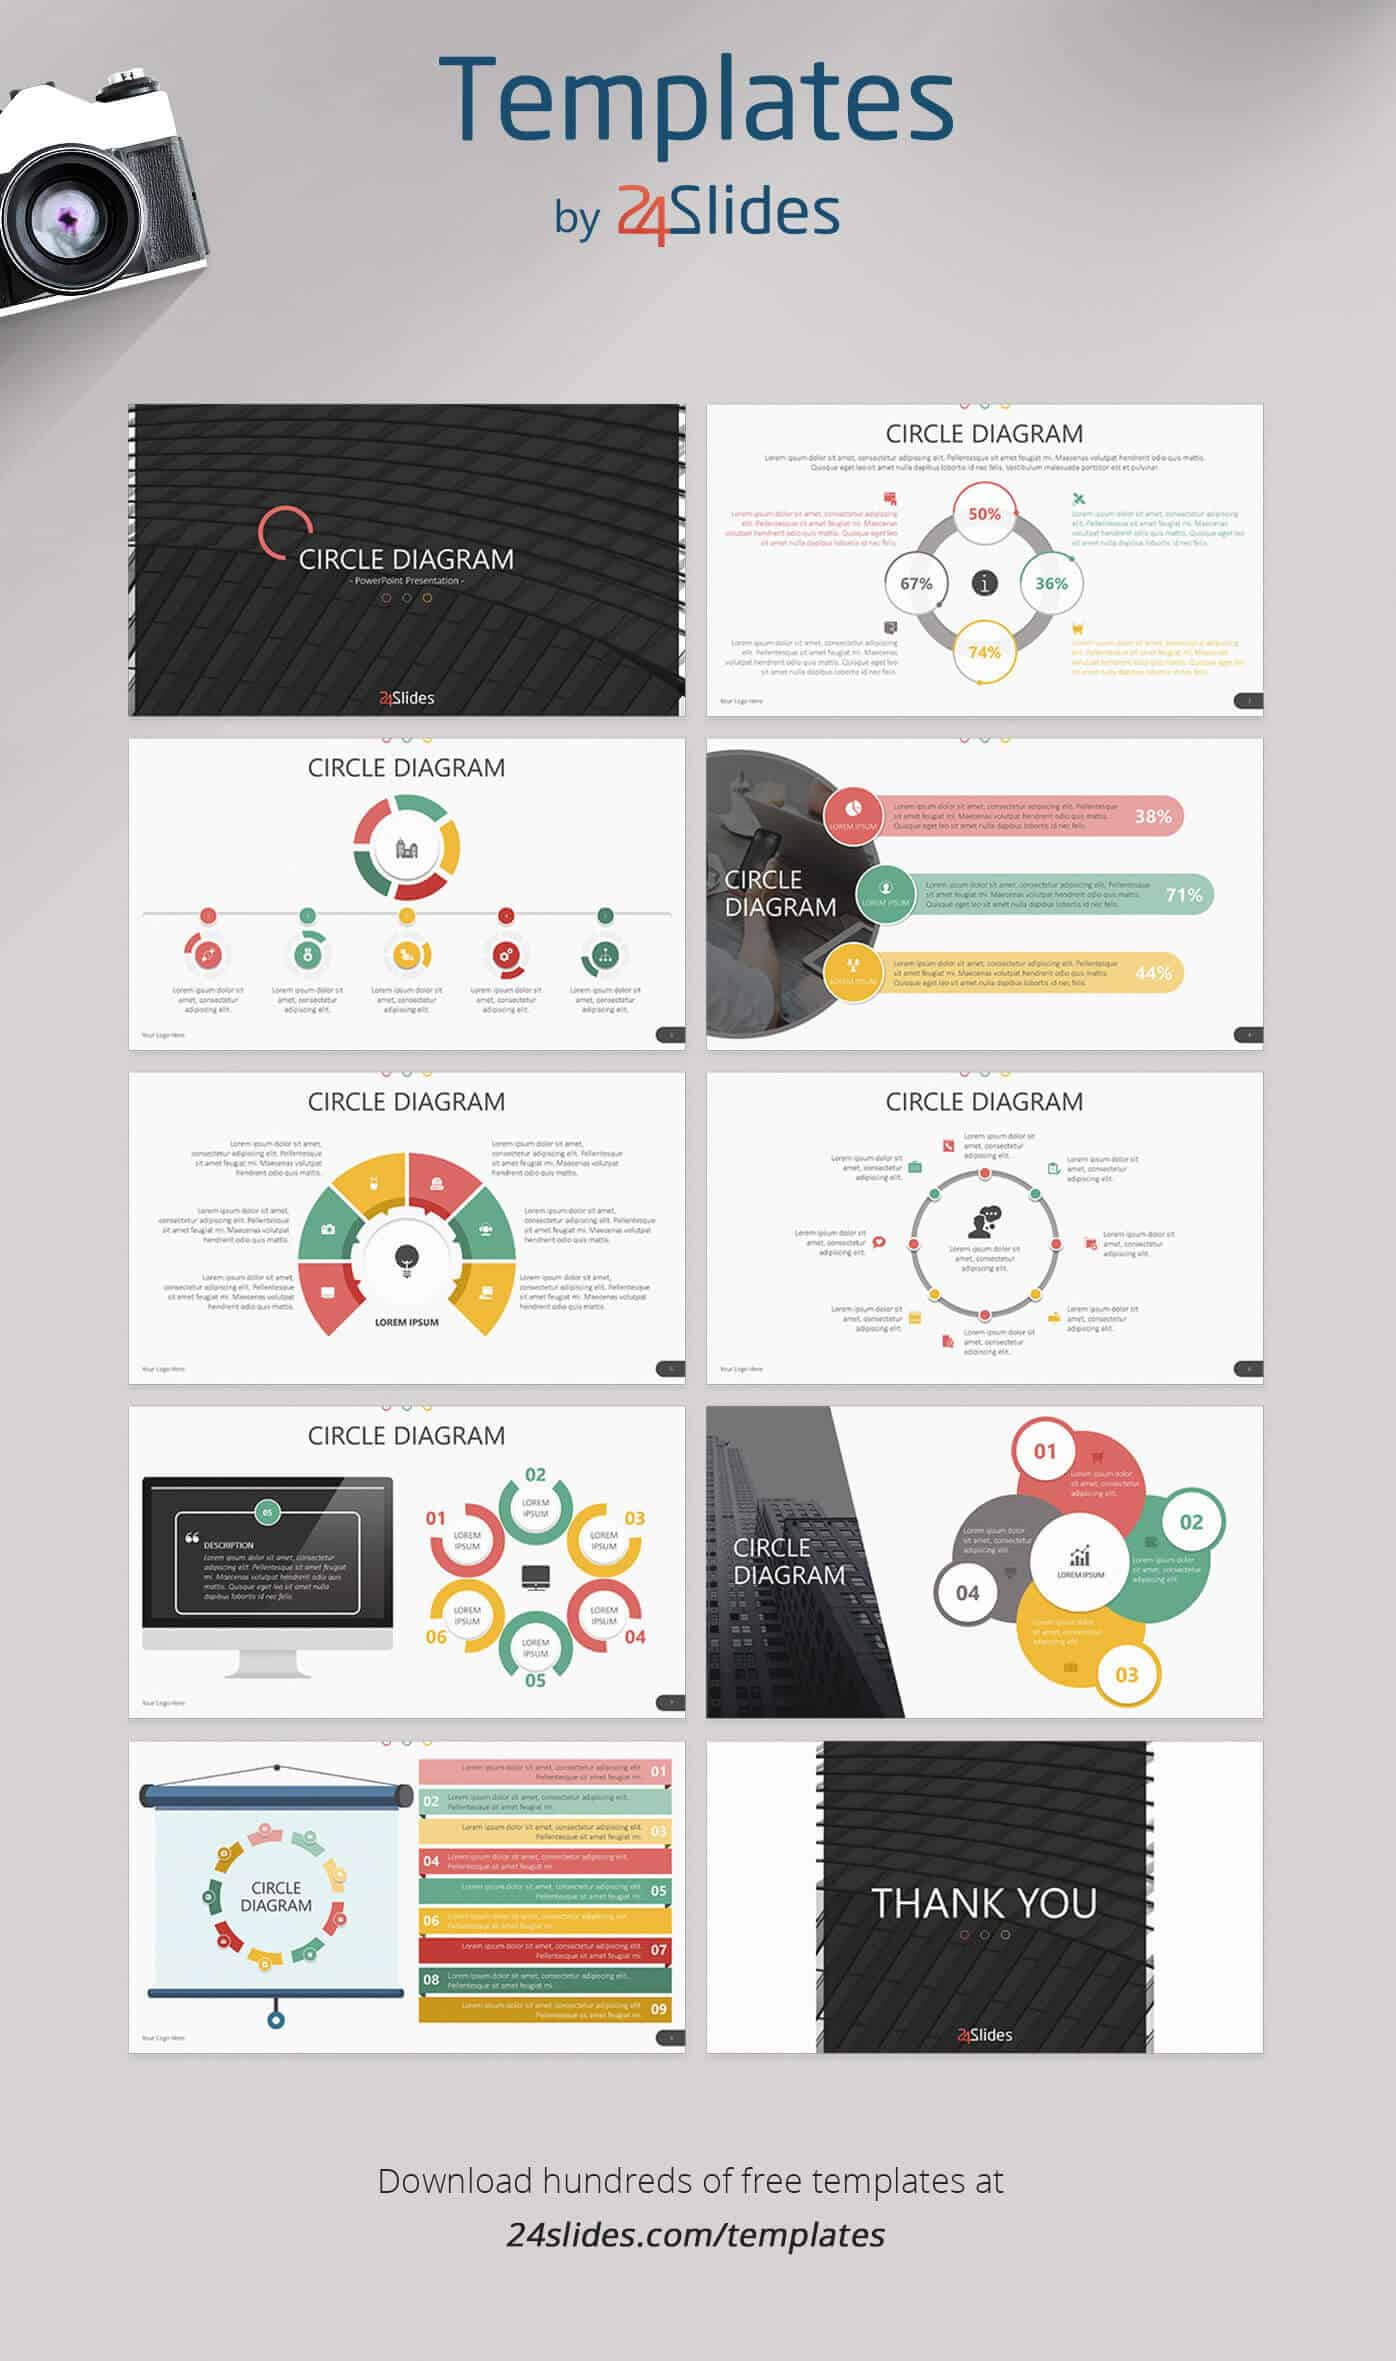 15 Fun And Colorful Free Powerpoint Templates | Present Better In Sample Templates For Powerpoint Presentation